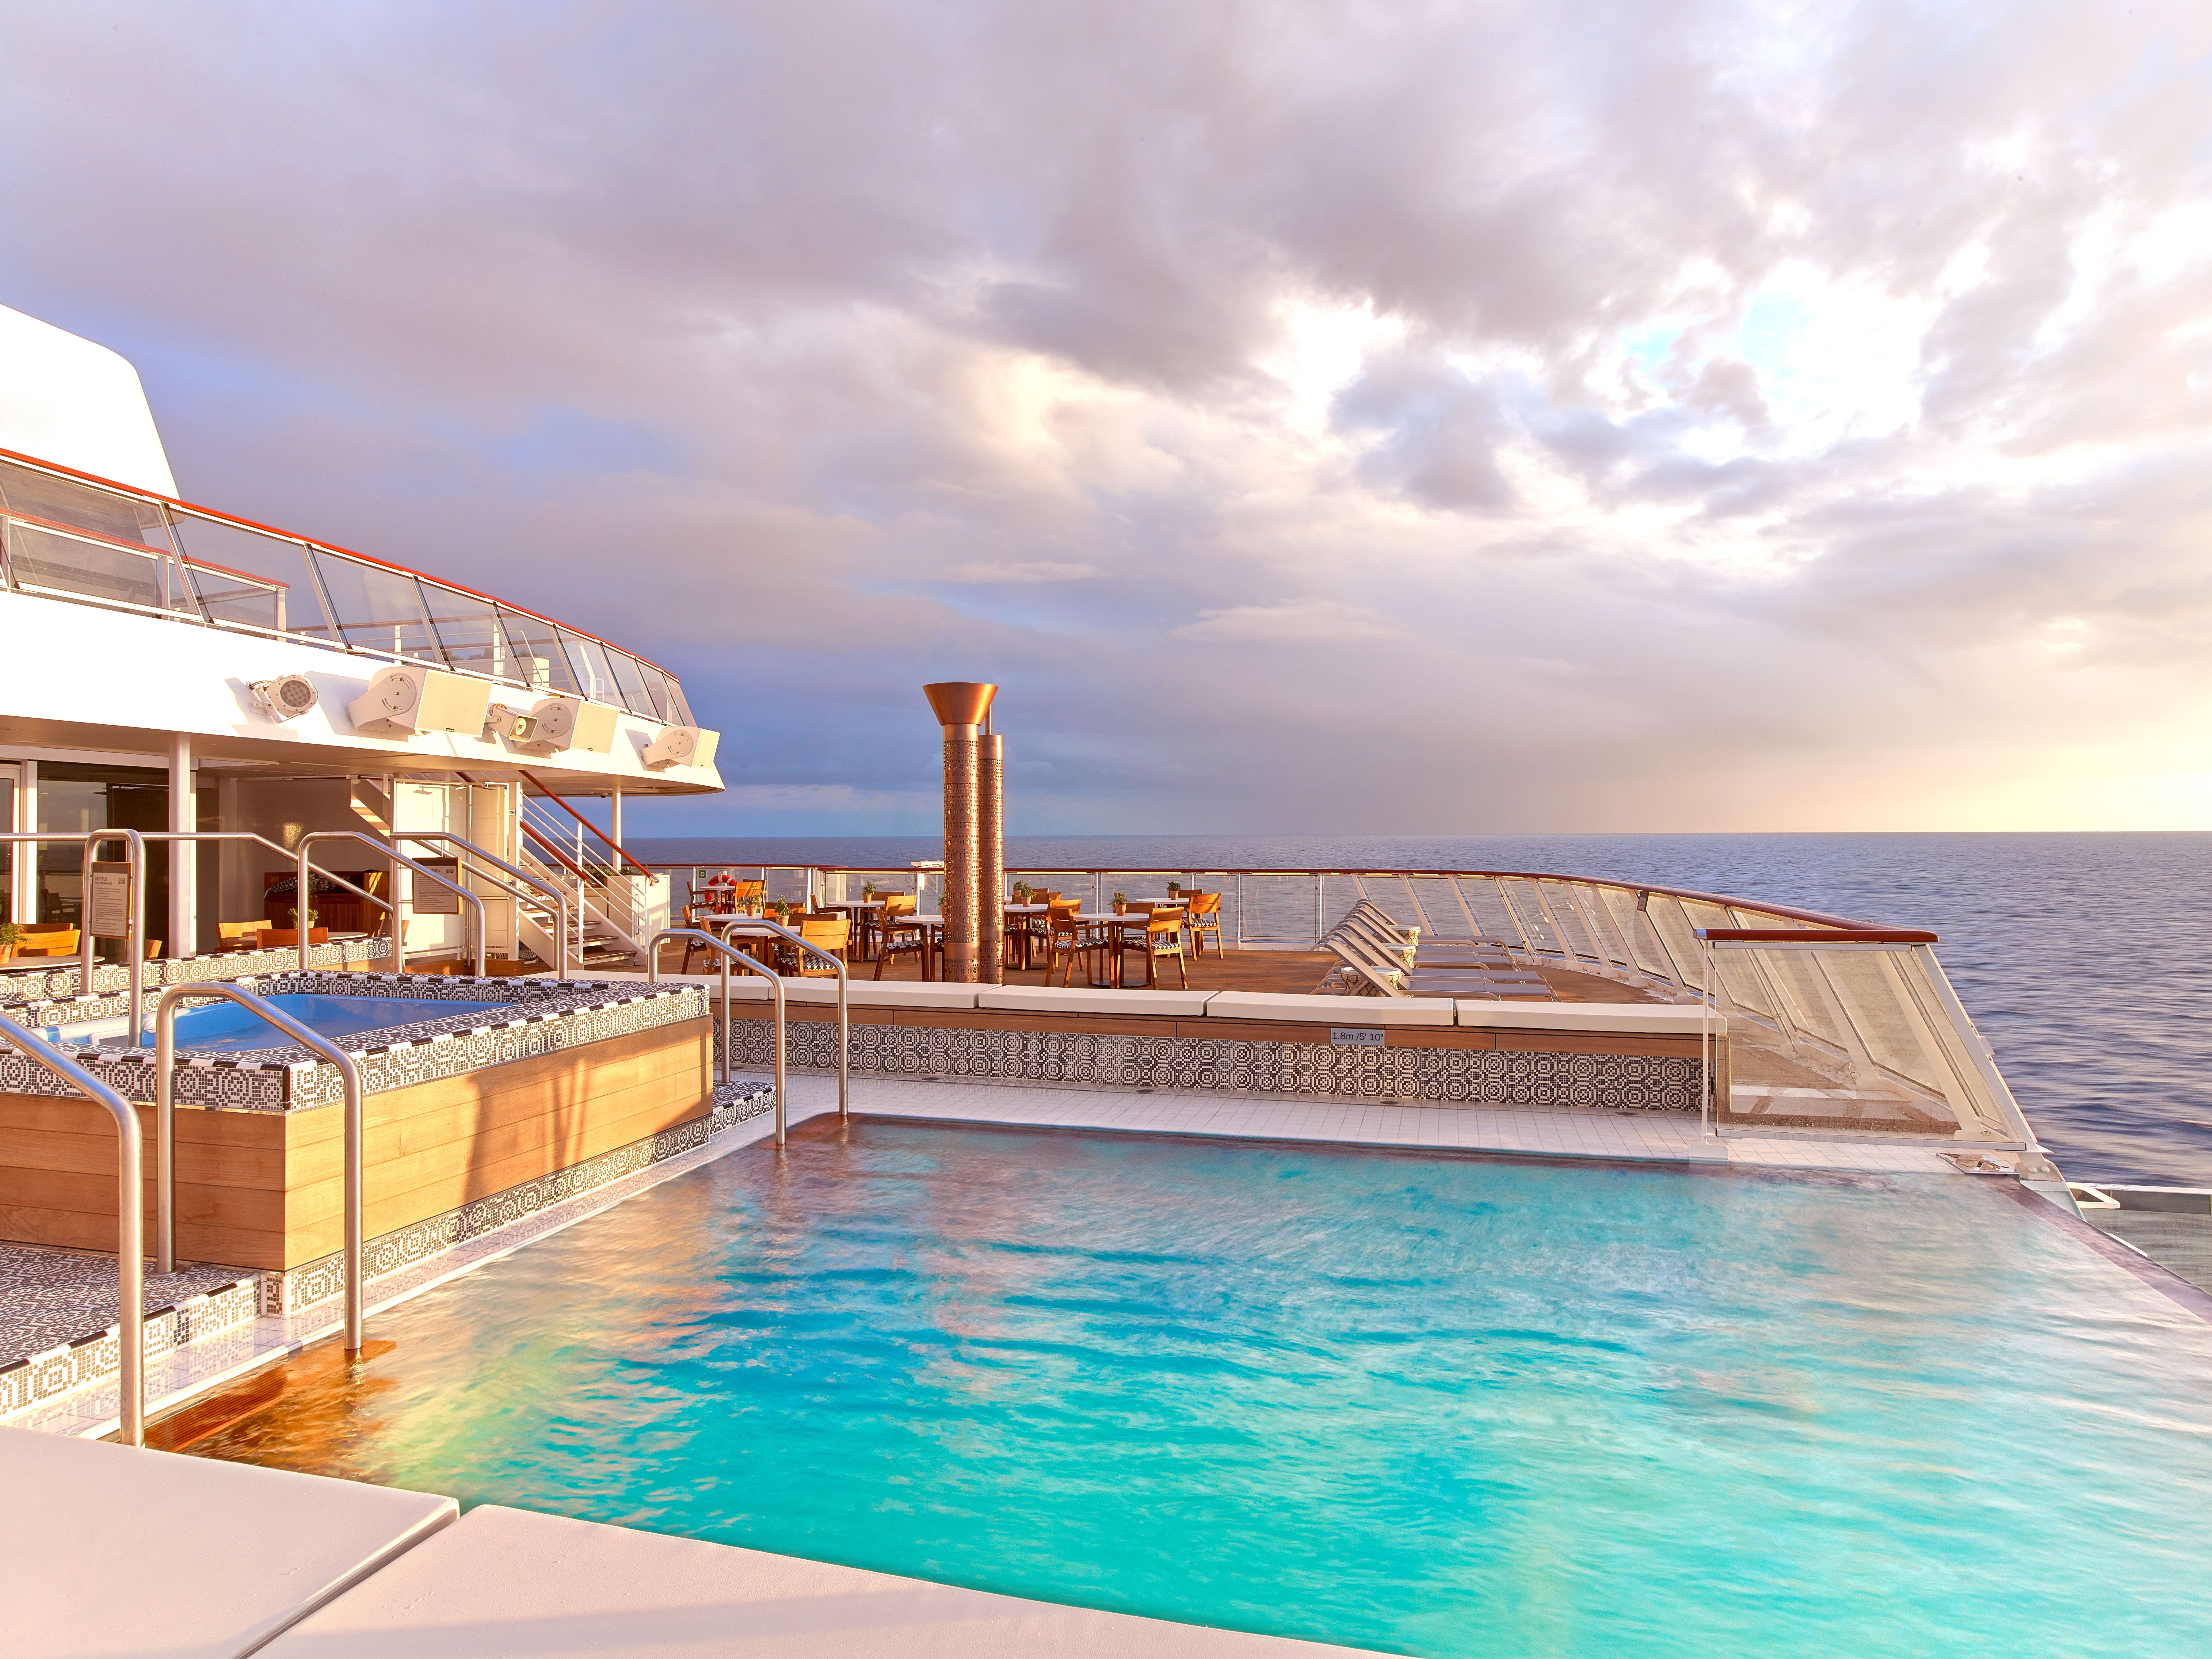 Viking Ocean infinity pool horizon